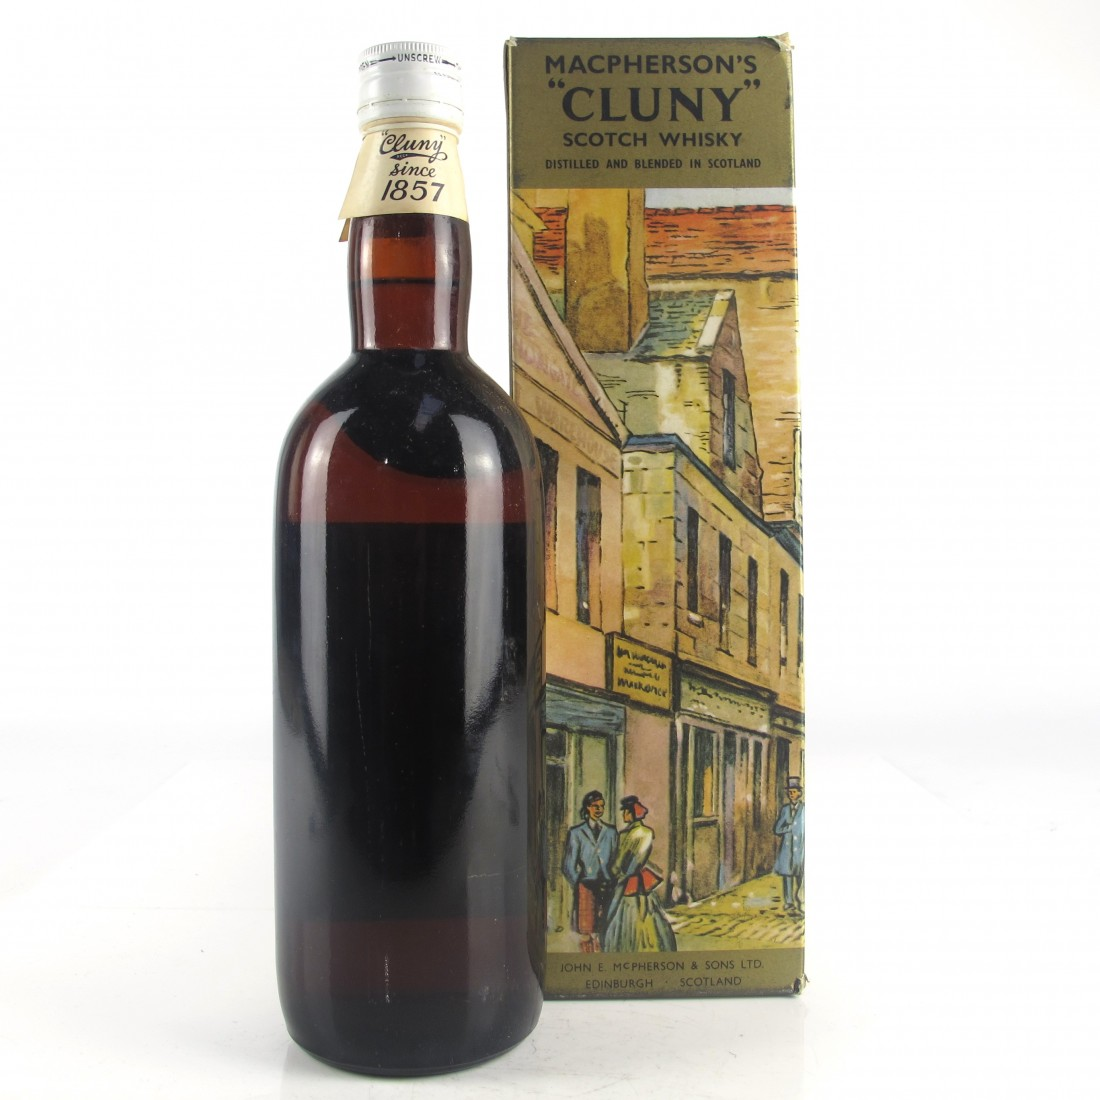 Cluny Old Scotch Whisky 1960s